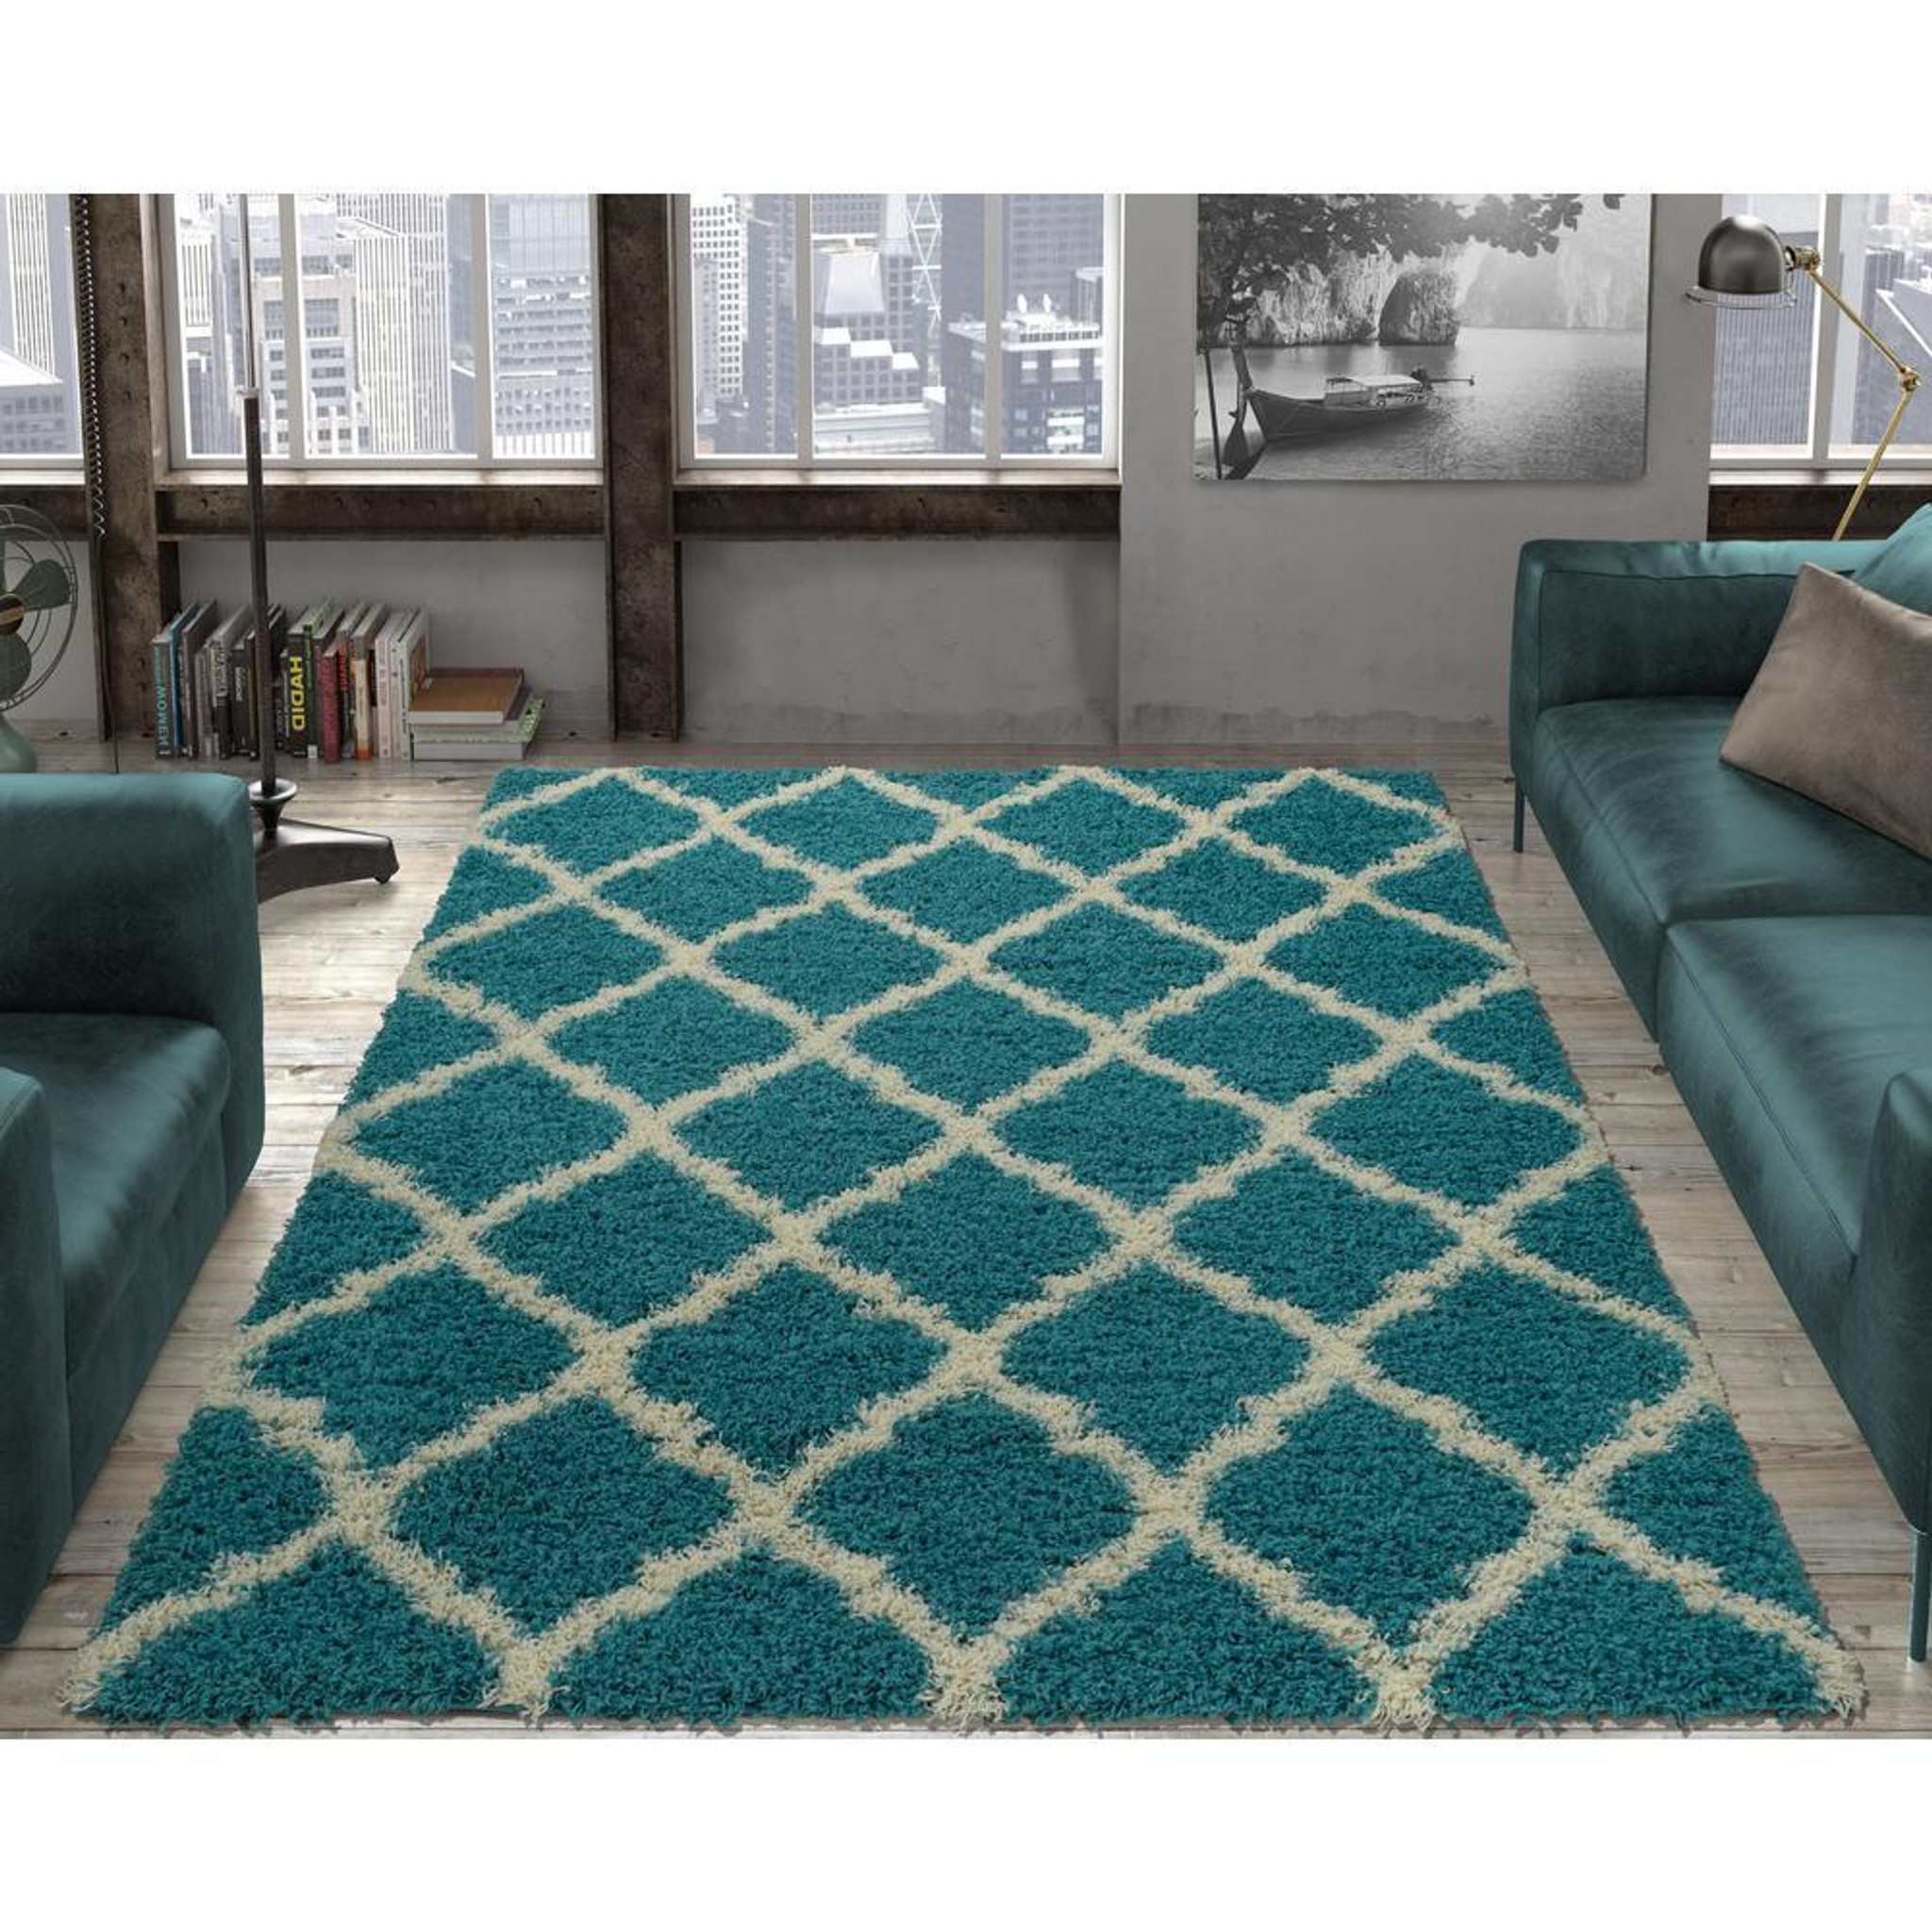 Cozy2276 5x7 Cozy Moroccan Turquoise Shag Area Rug By Km Rugs